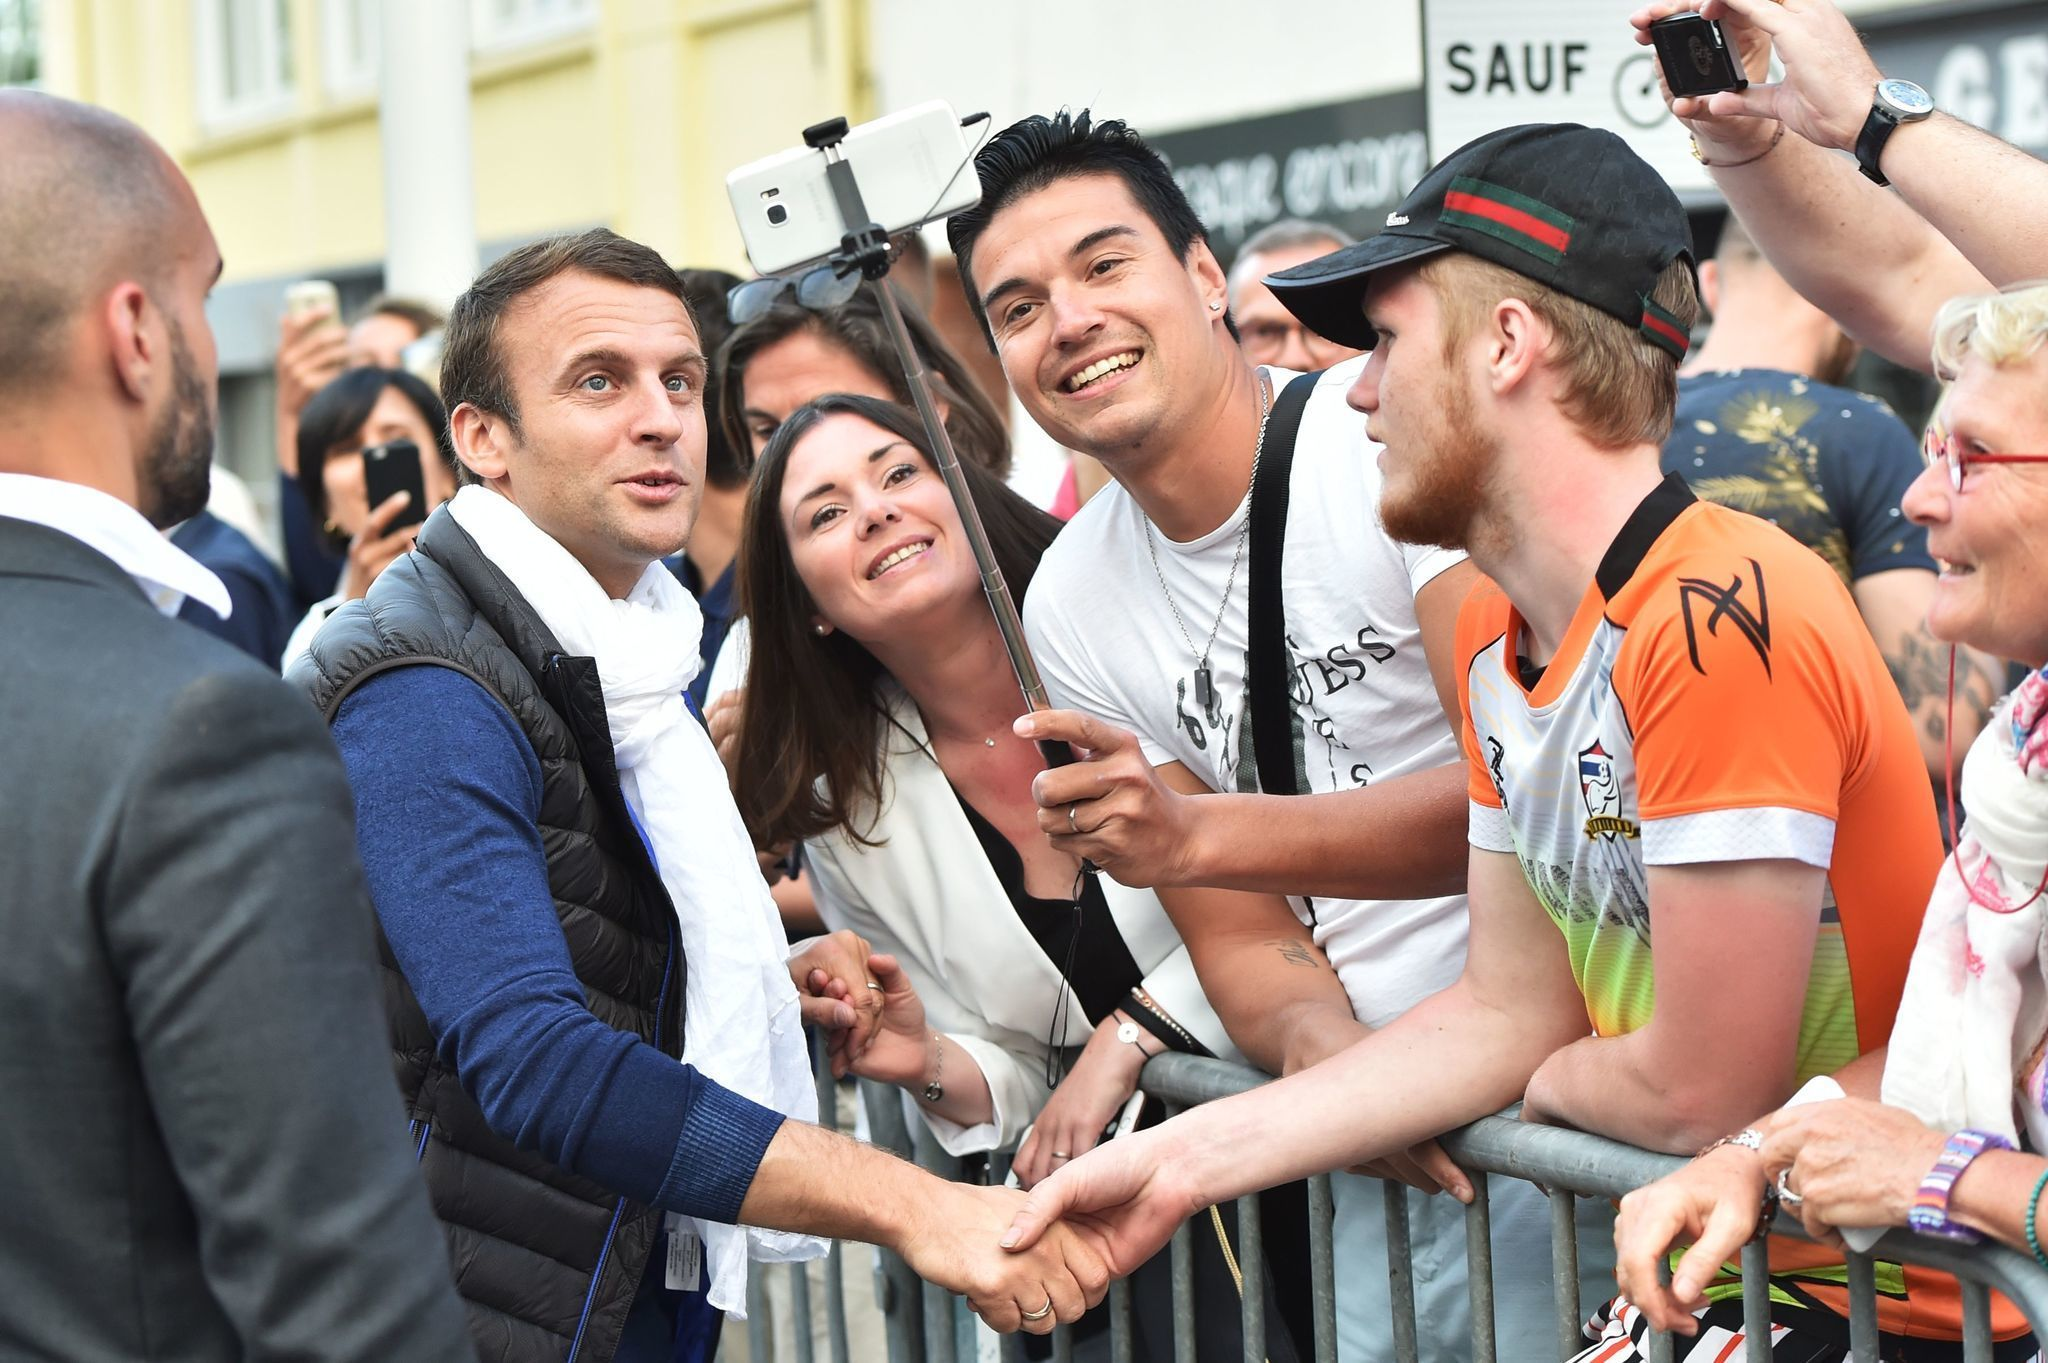 Can Macron carry his upstart political movement into parliament? Sunday's elections in France will tell.